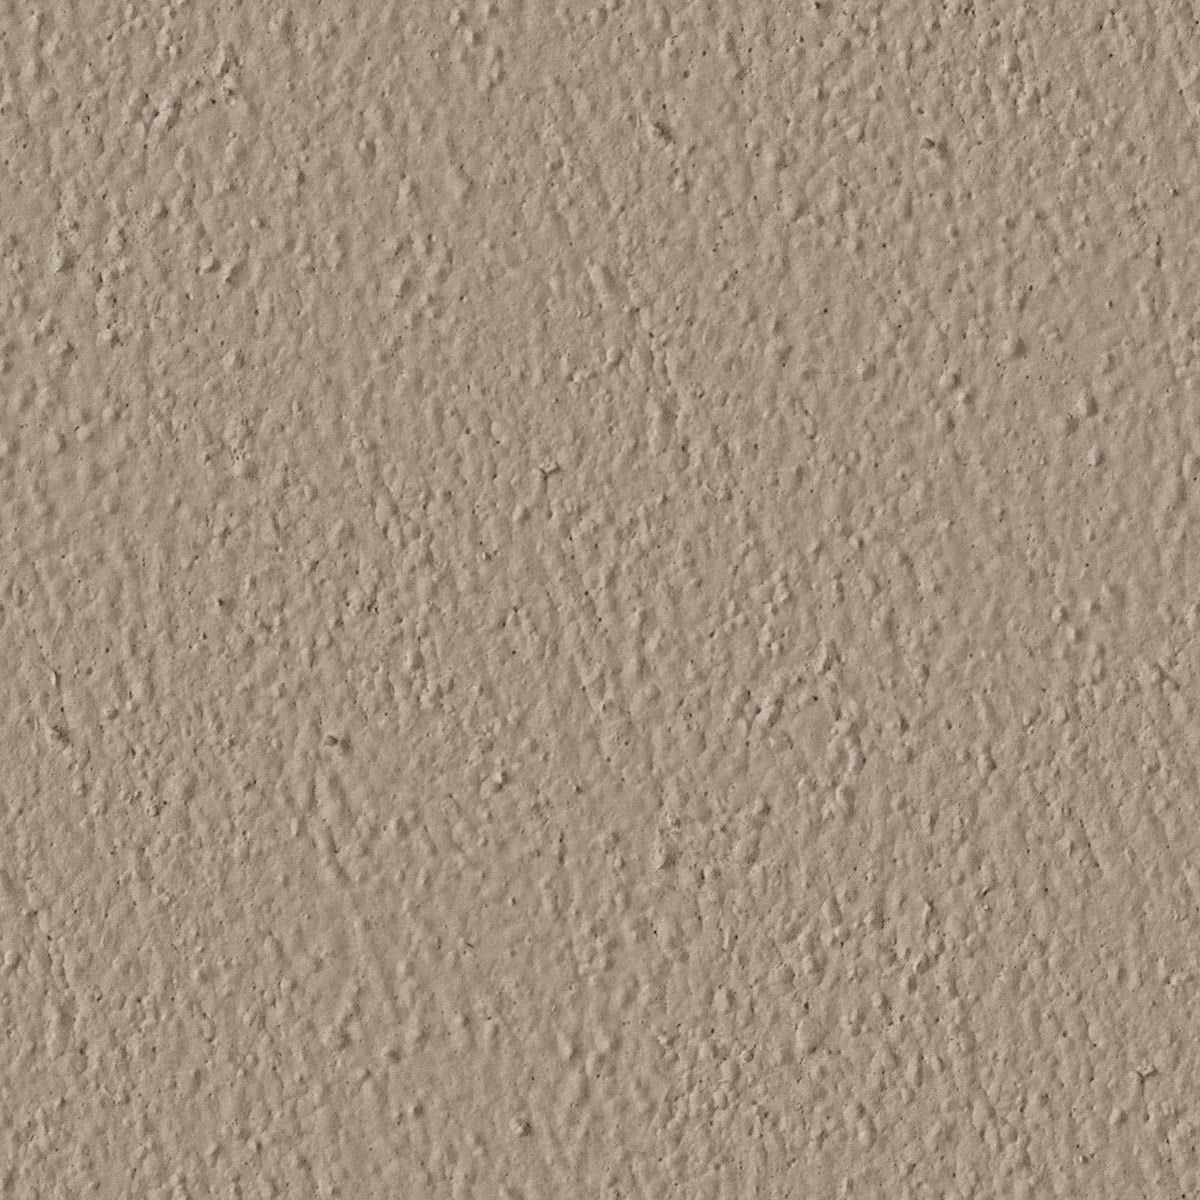 HIGH RESOLUTION TEXTURES: Stucco